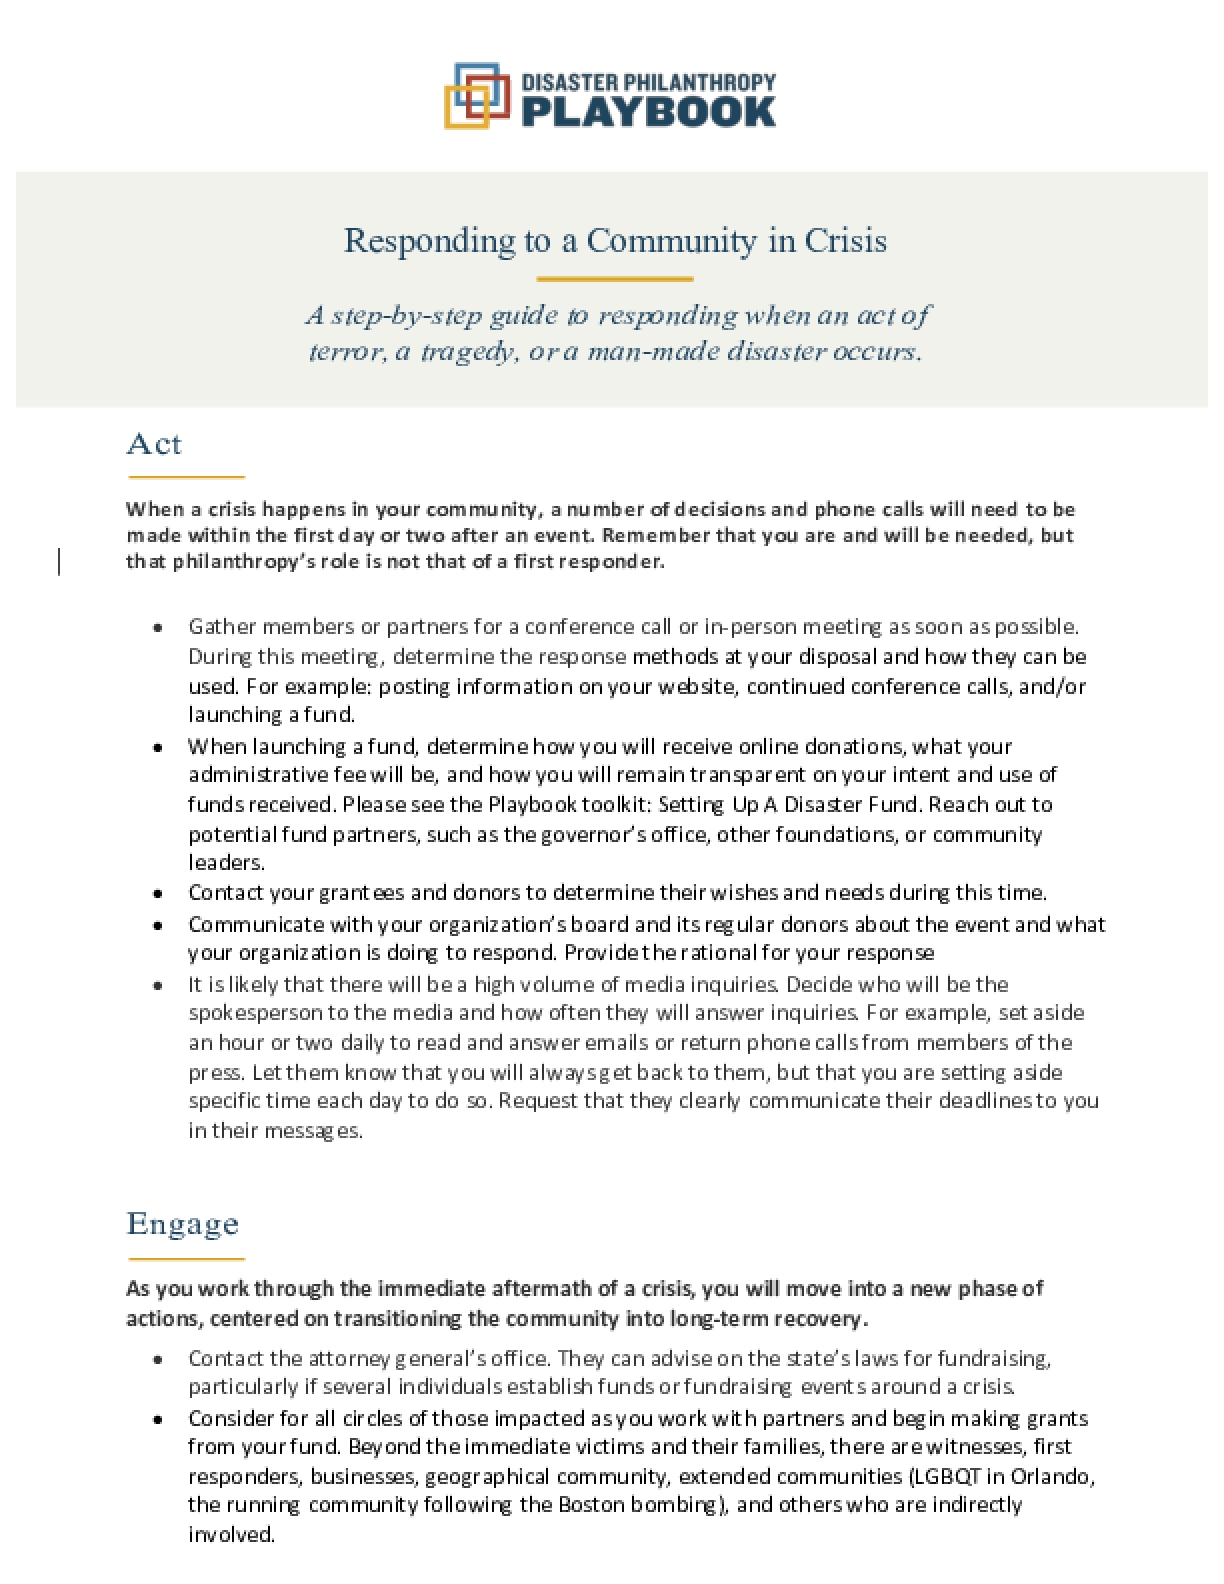 Responding to A Community in Crisis